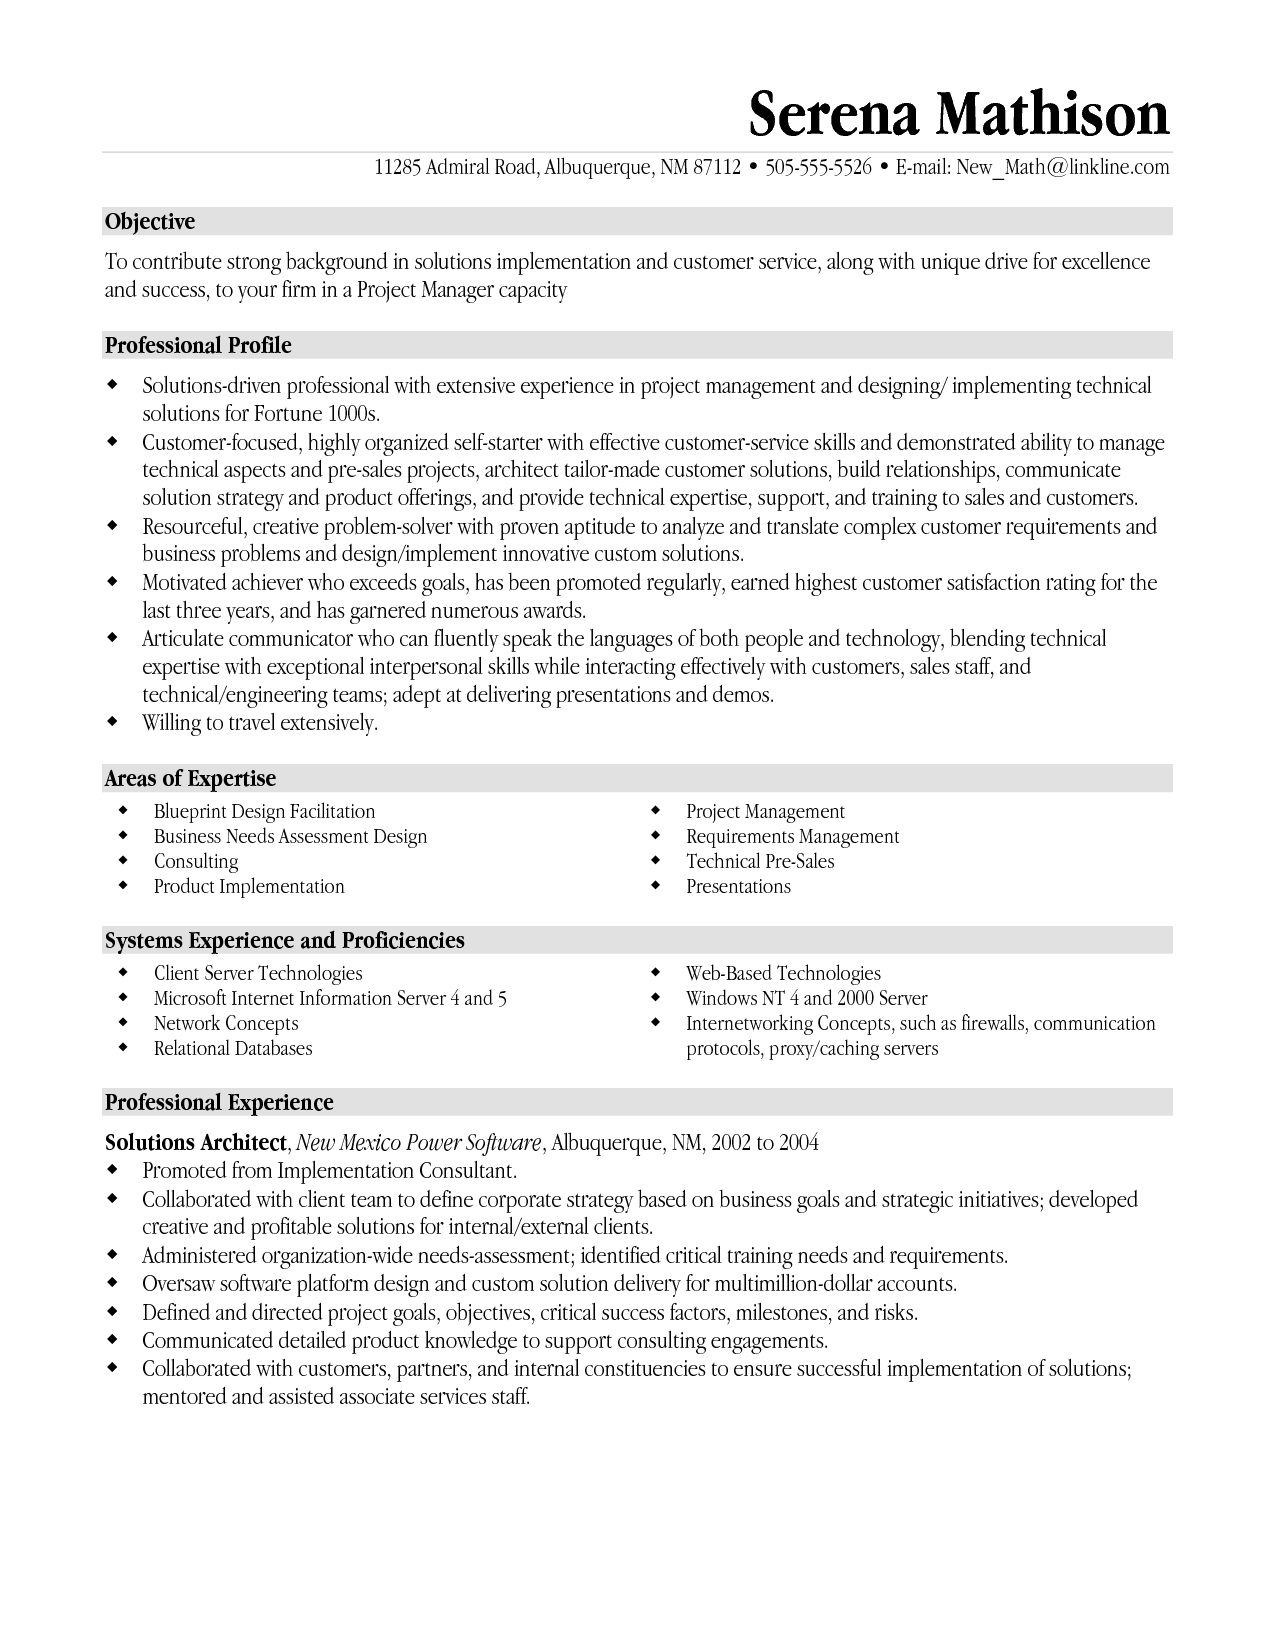 resume Program Manager Resume Pdf resume templates project manager management resume